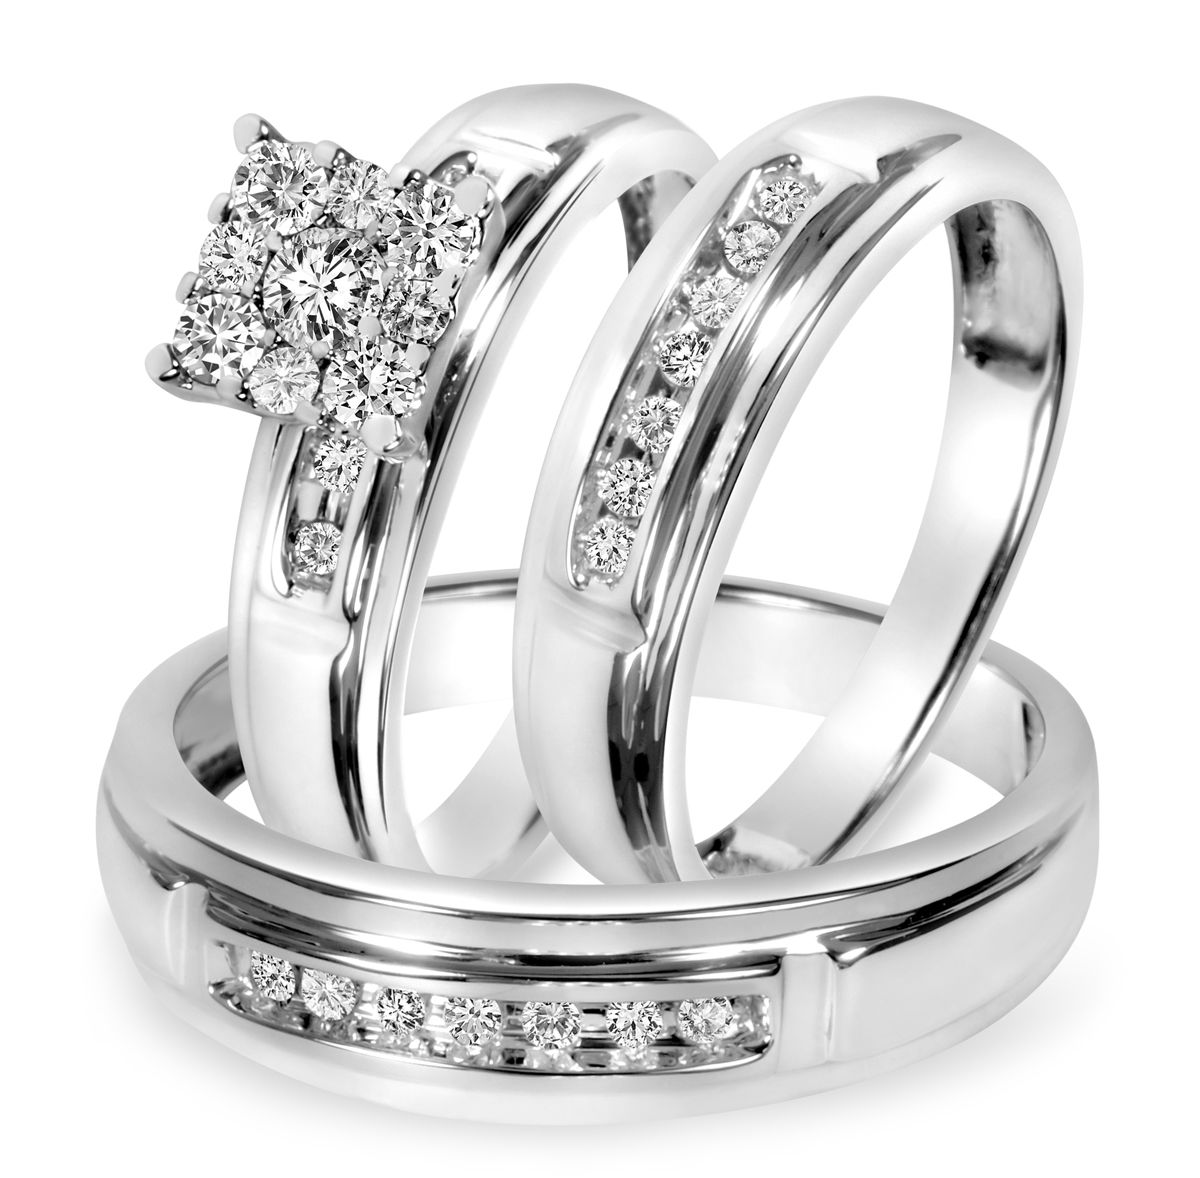 tw diamond trio matching wedding ring set 10k white gold - White Gold Wedding Rings Sets